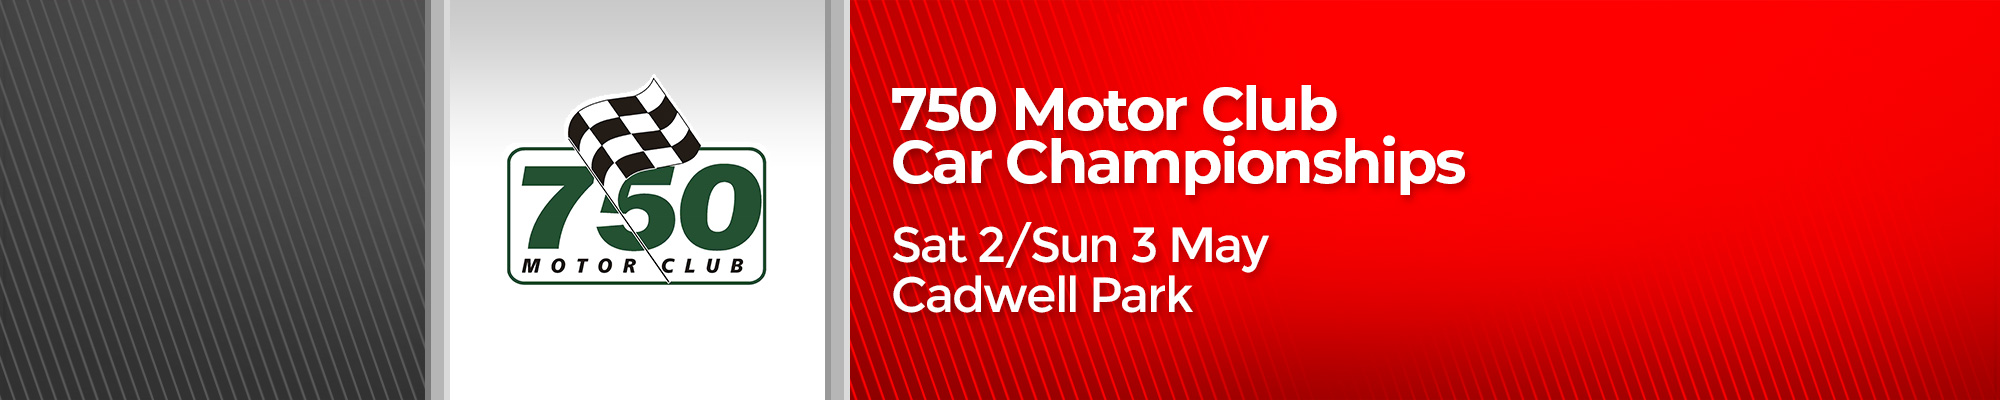 750 Motor Club Car Championships - POSTPONED